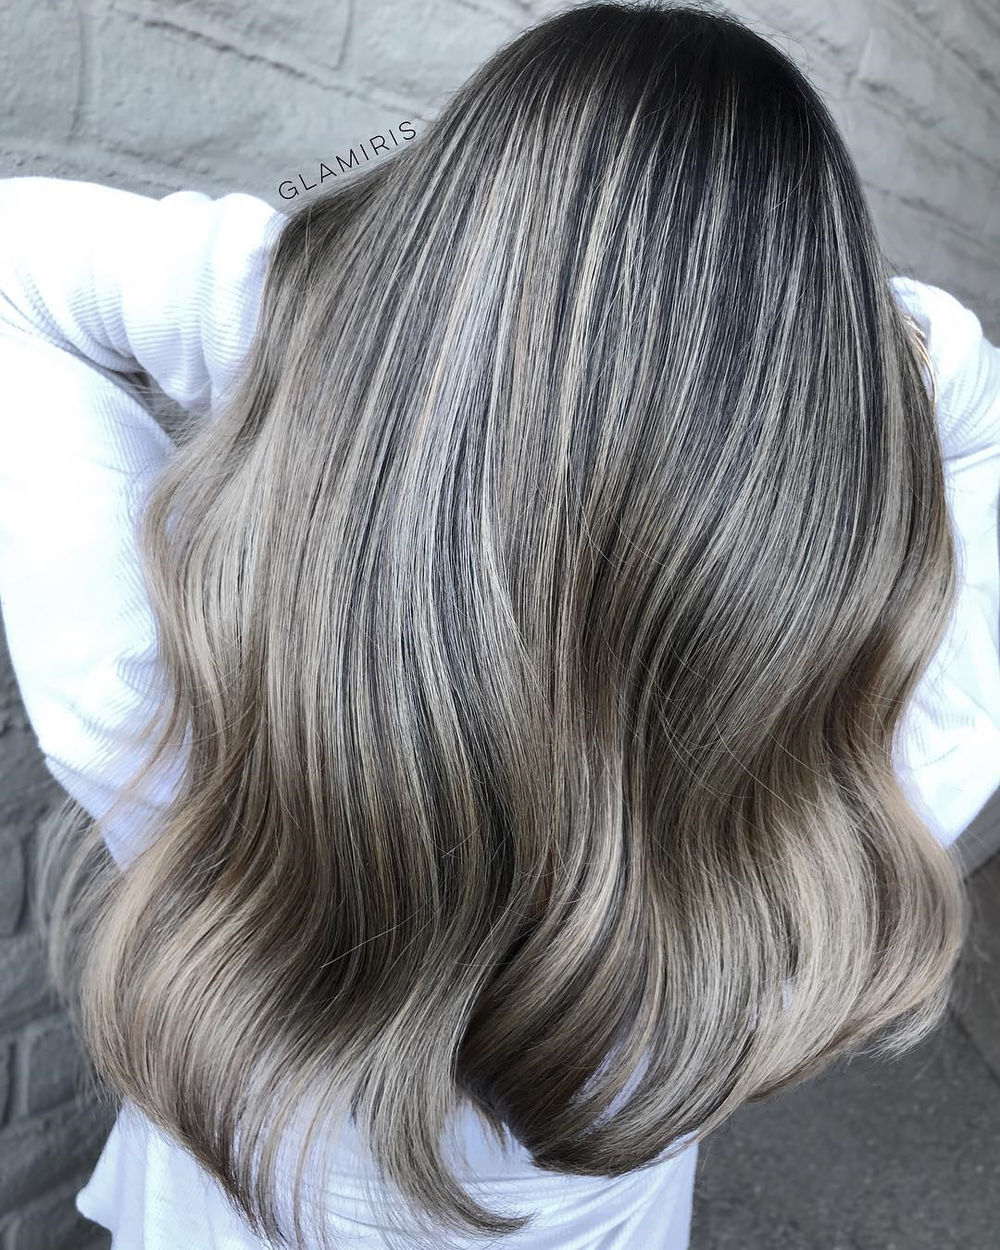 Dark Hair with Silver and Blonde Balayage